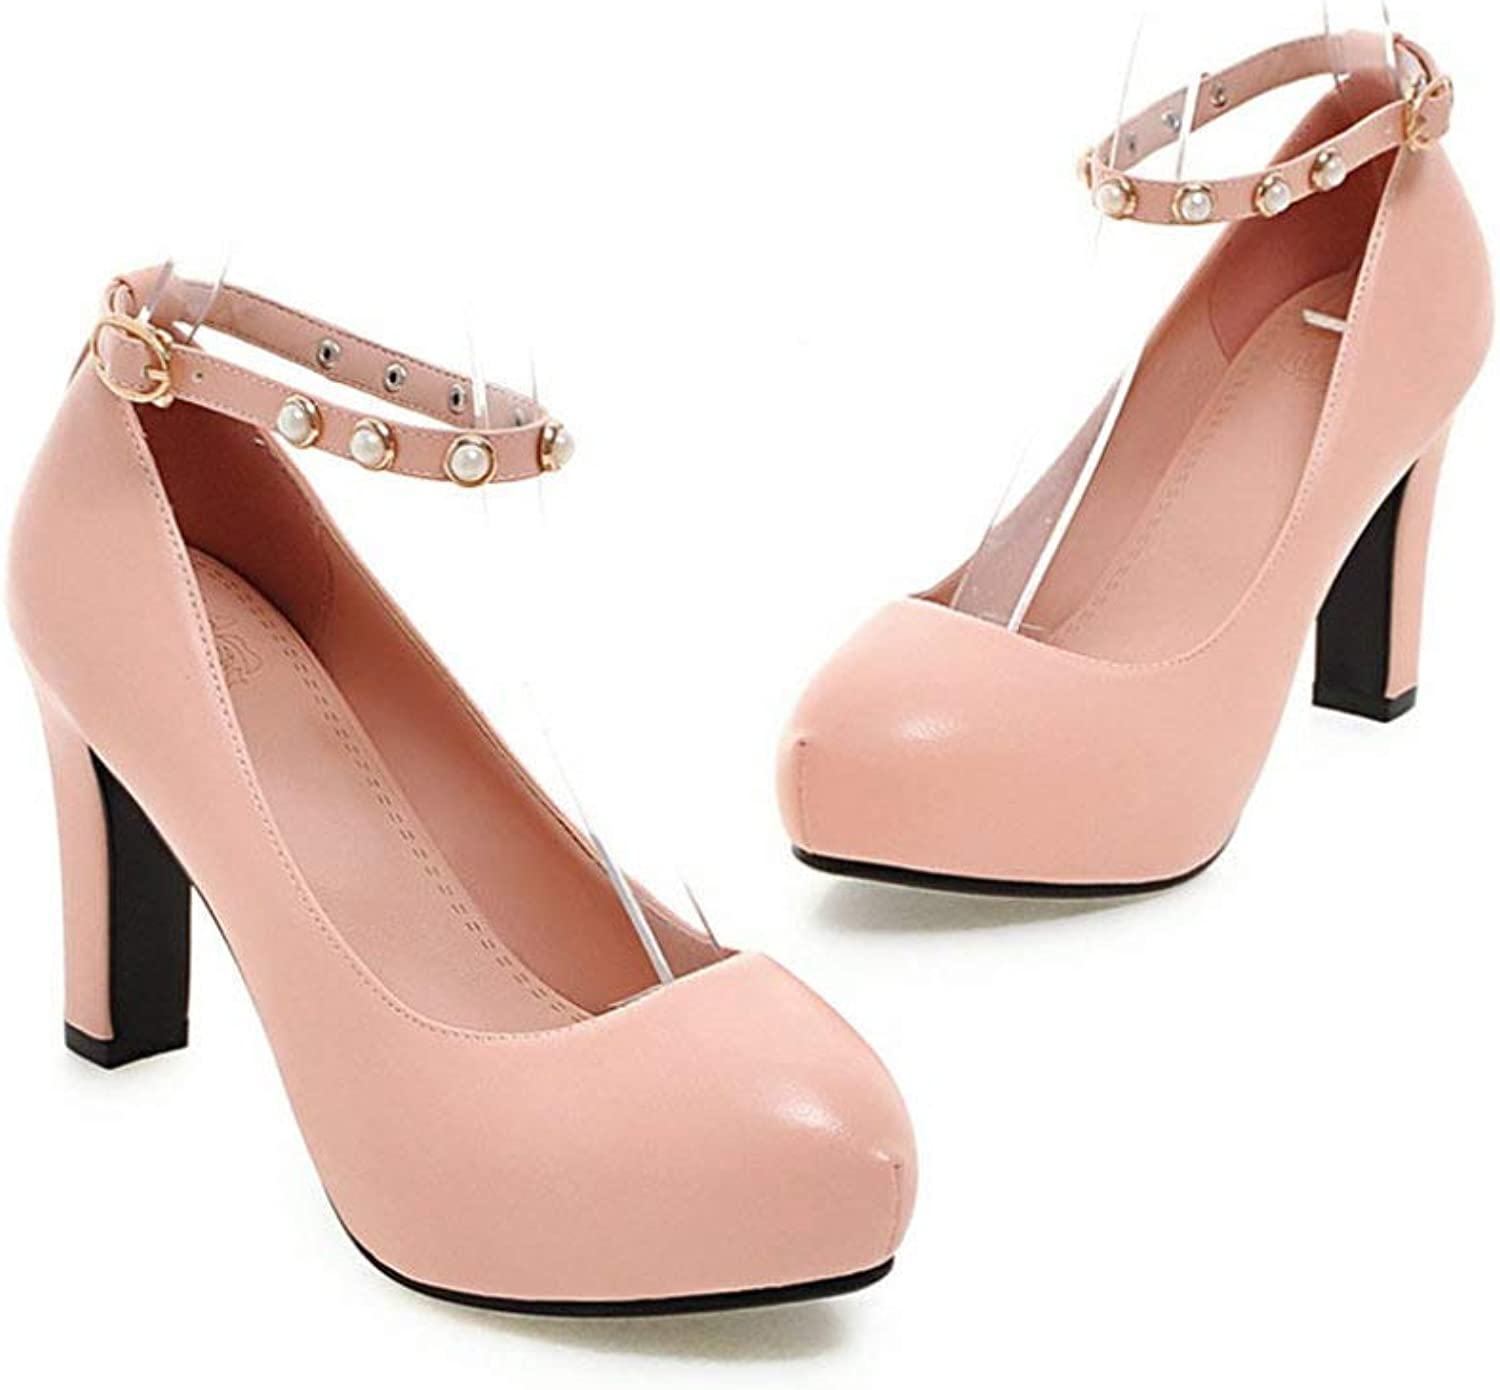 Women Hight Heels shoes Platform Round Toe Adjustable Buckle with Pearl Sandals Fashion D'Orsay Pumps